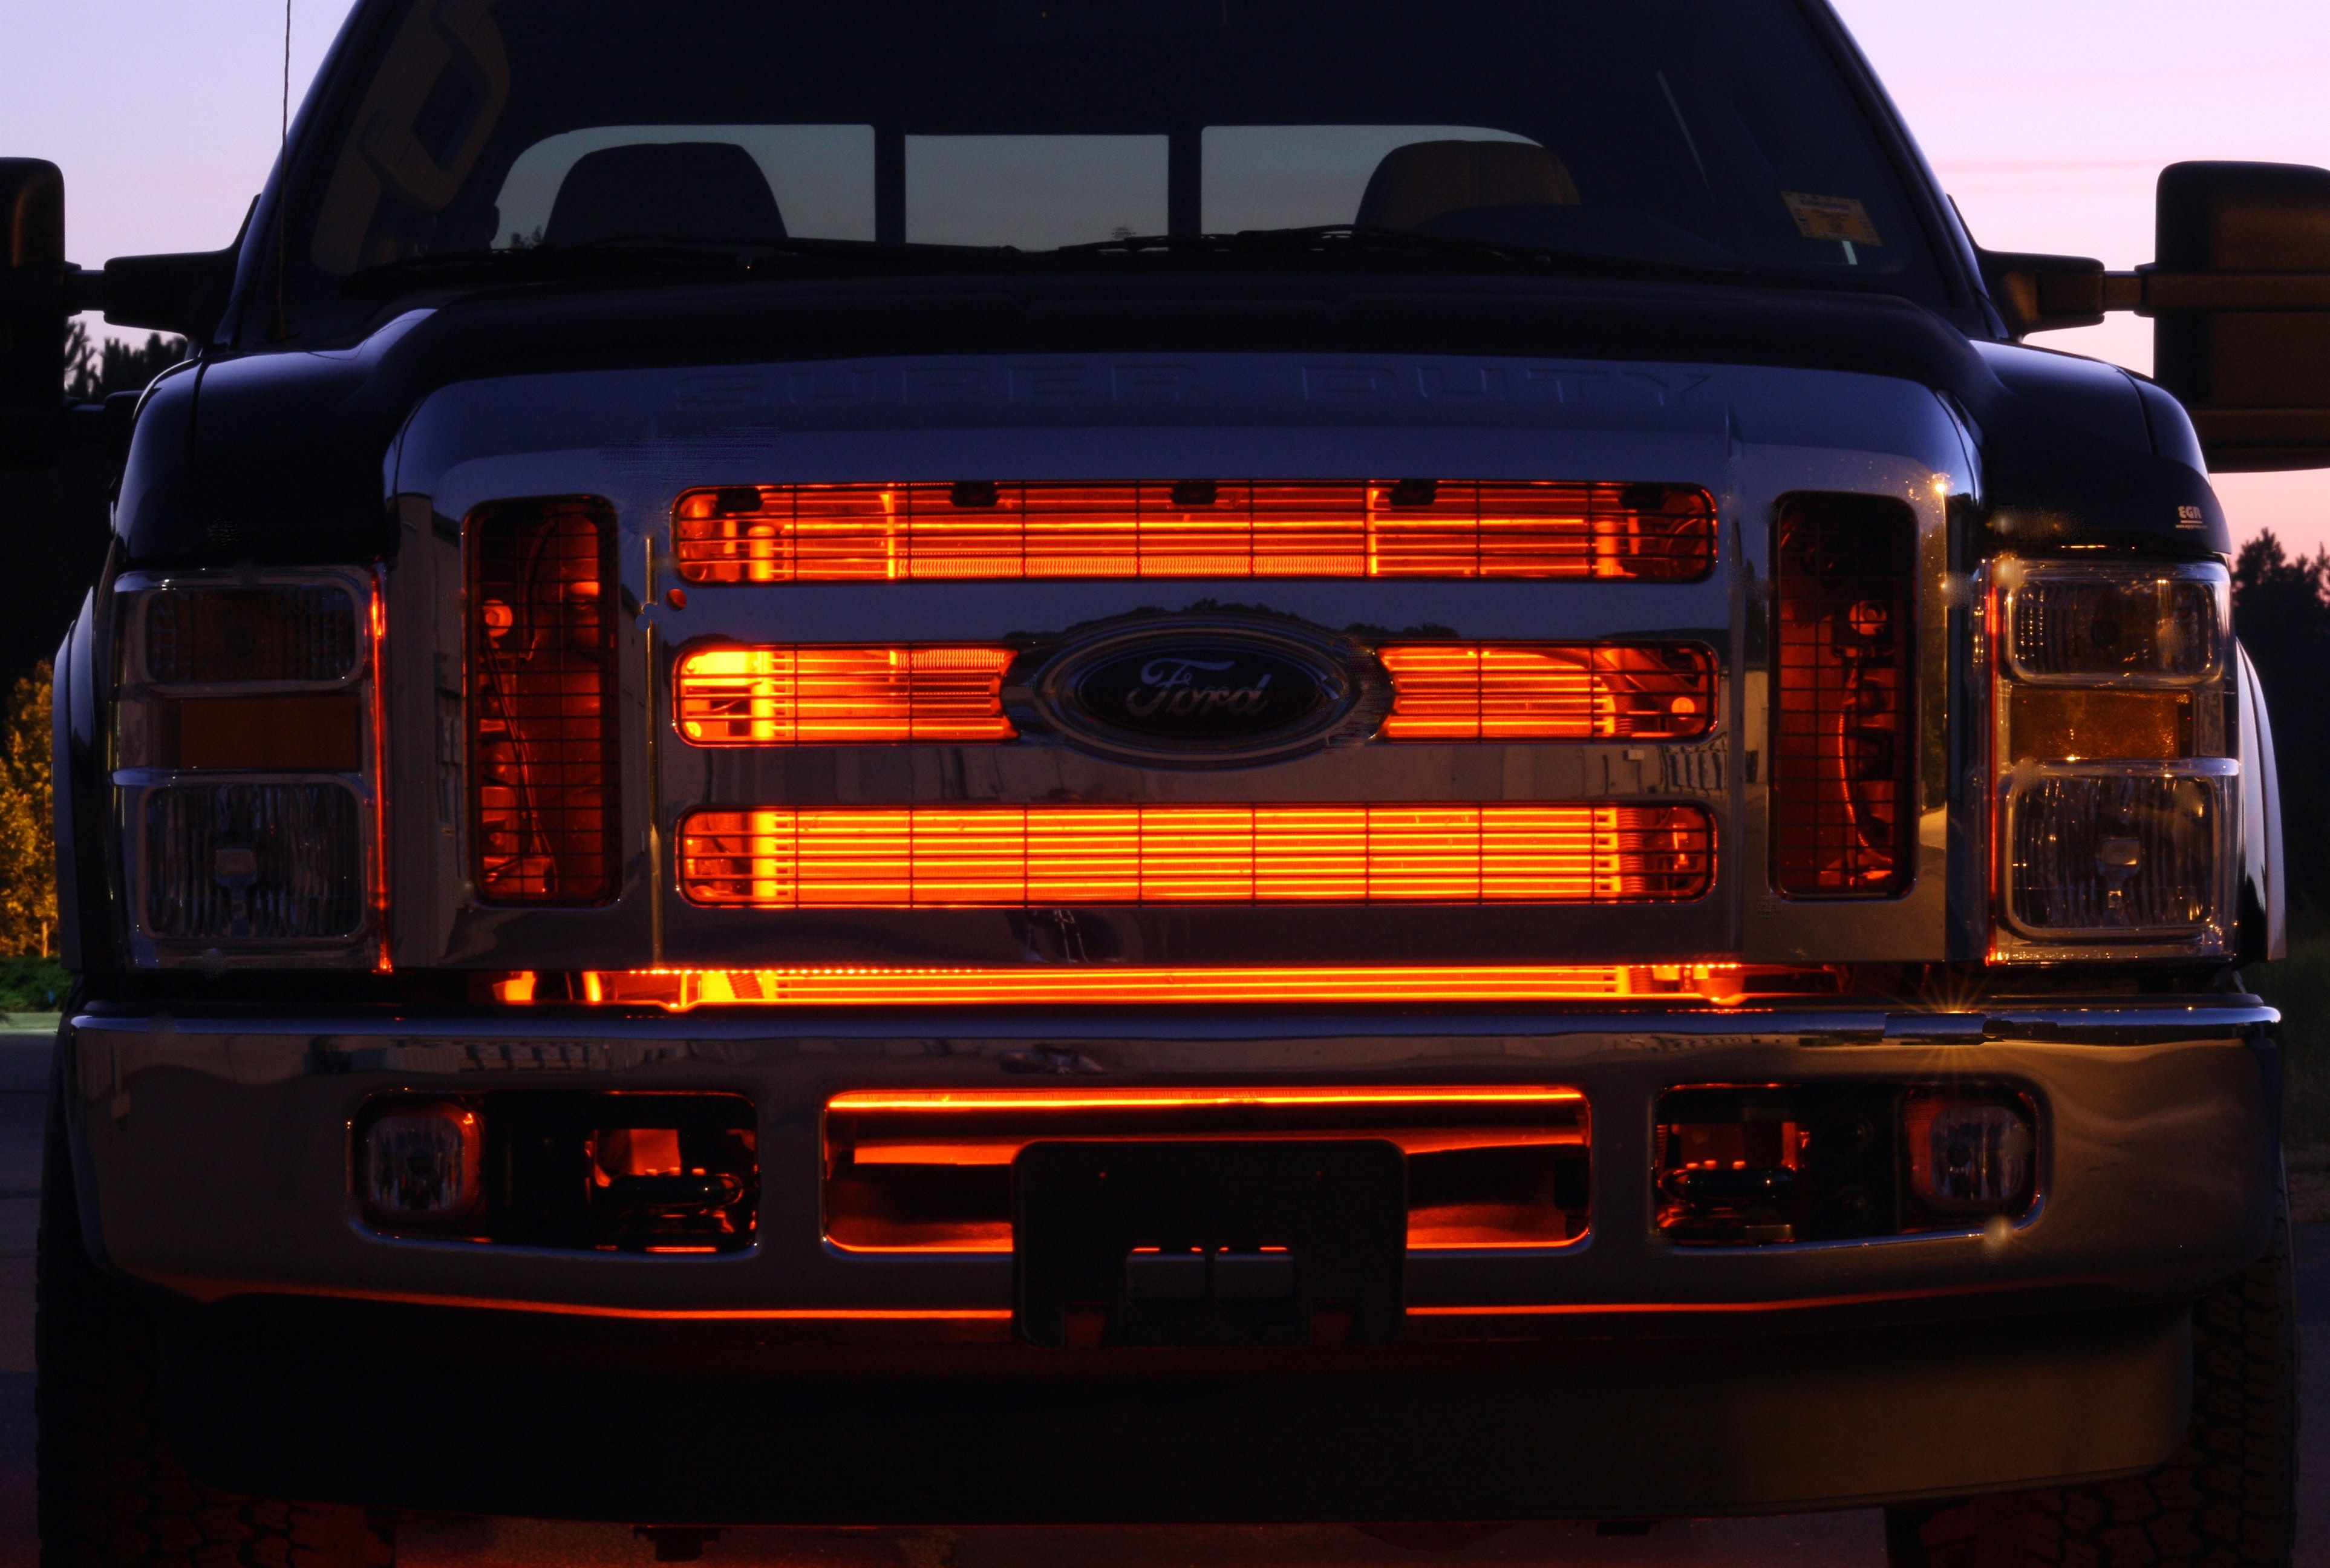 Led Lights For Trucks Semi Truck Led Lights And Accessories Bozbuz With 25 3852x2592px